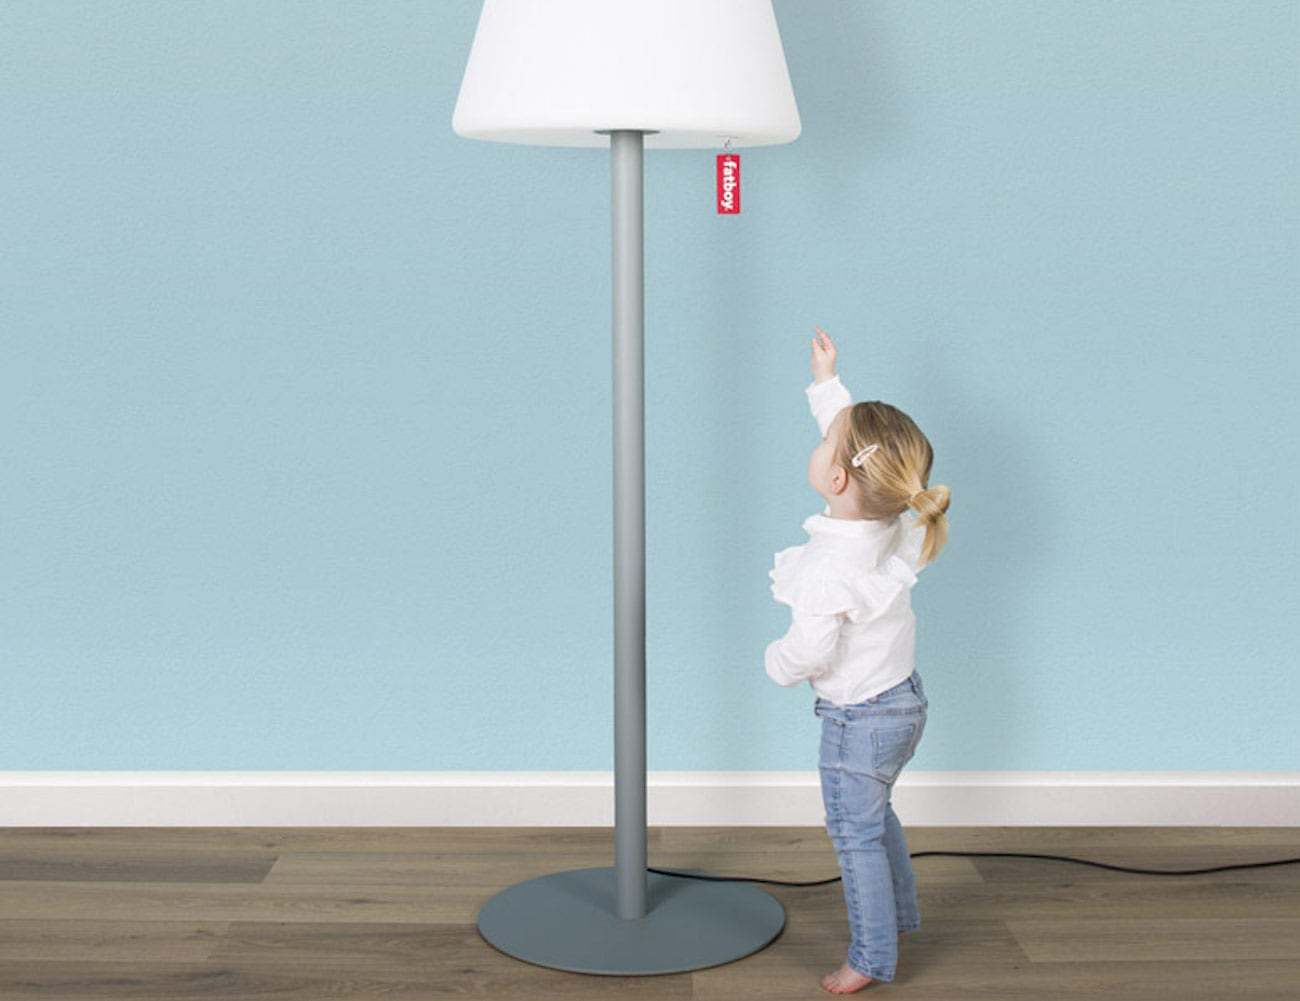 Fatboy Edison the Giant Dimmable LED Floor Lamp gives flair to minimalism